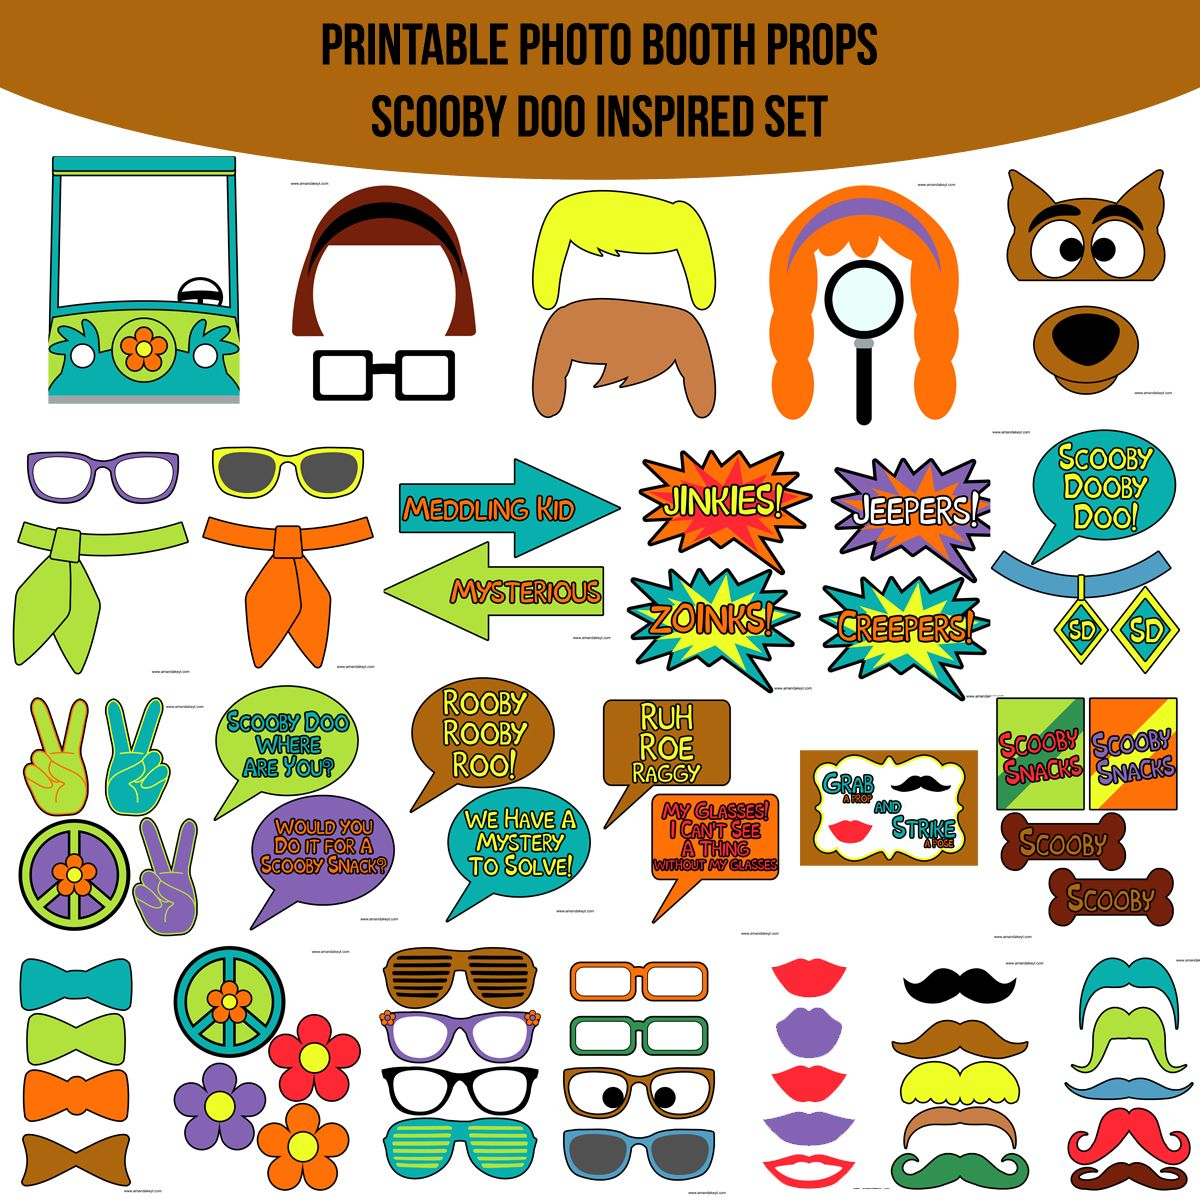 Instant Download Scooby Doo Inspired Printable Photo Booth